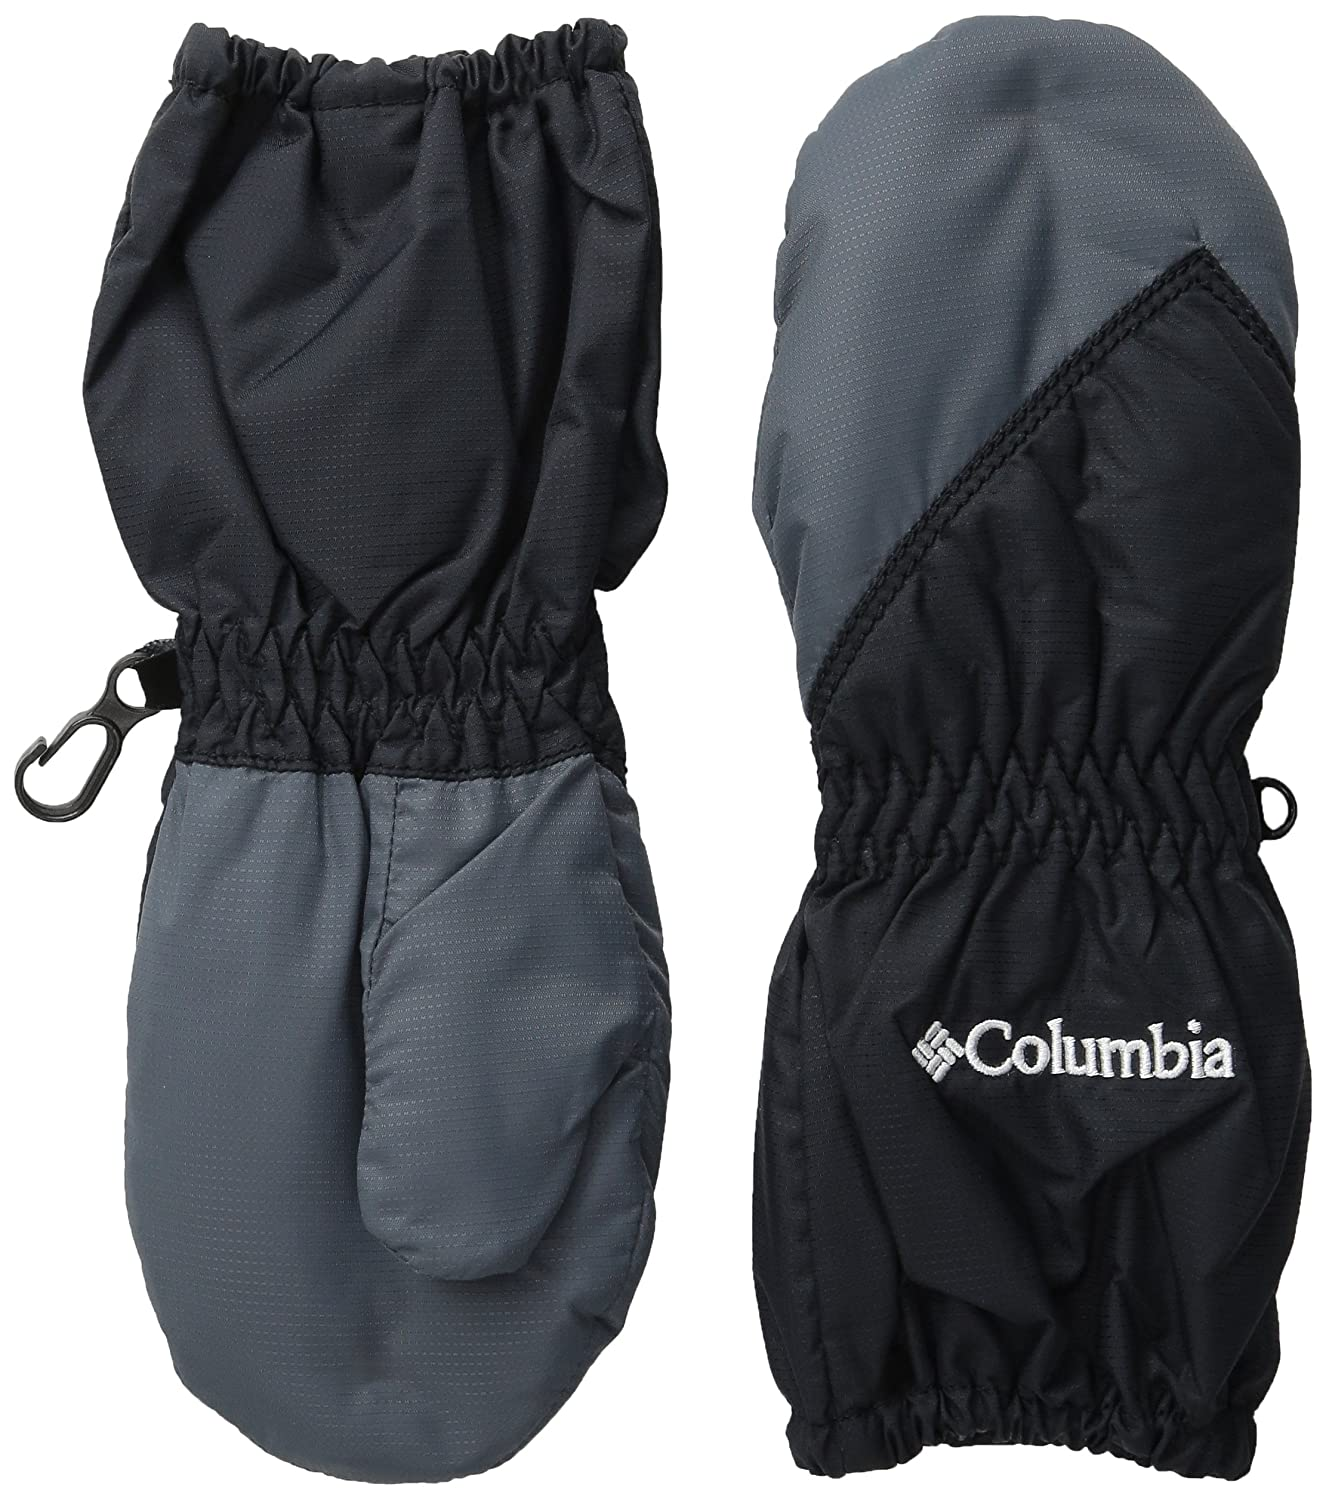 Columbia Unisex Baby Toddler Chippewa Long Mitten black Graphite One Size Columbia Sportswear